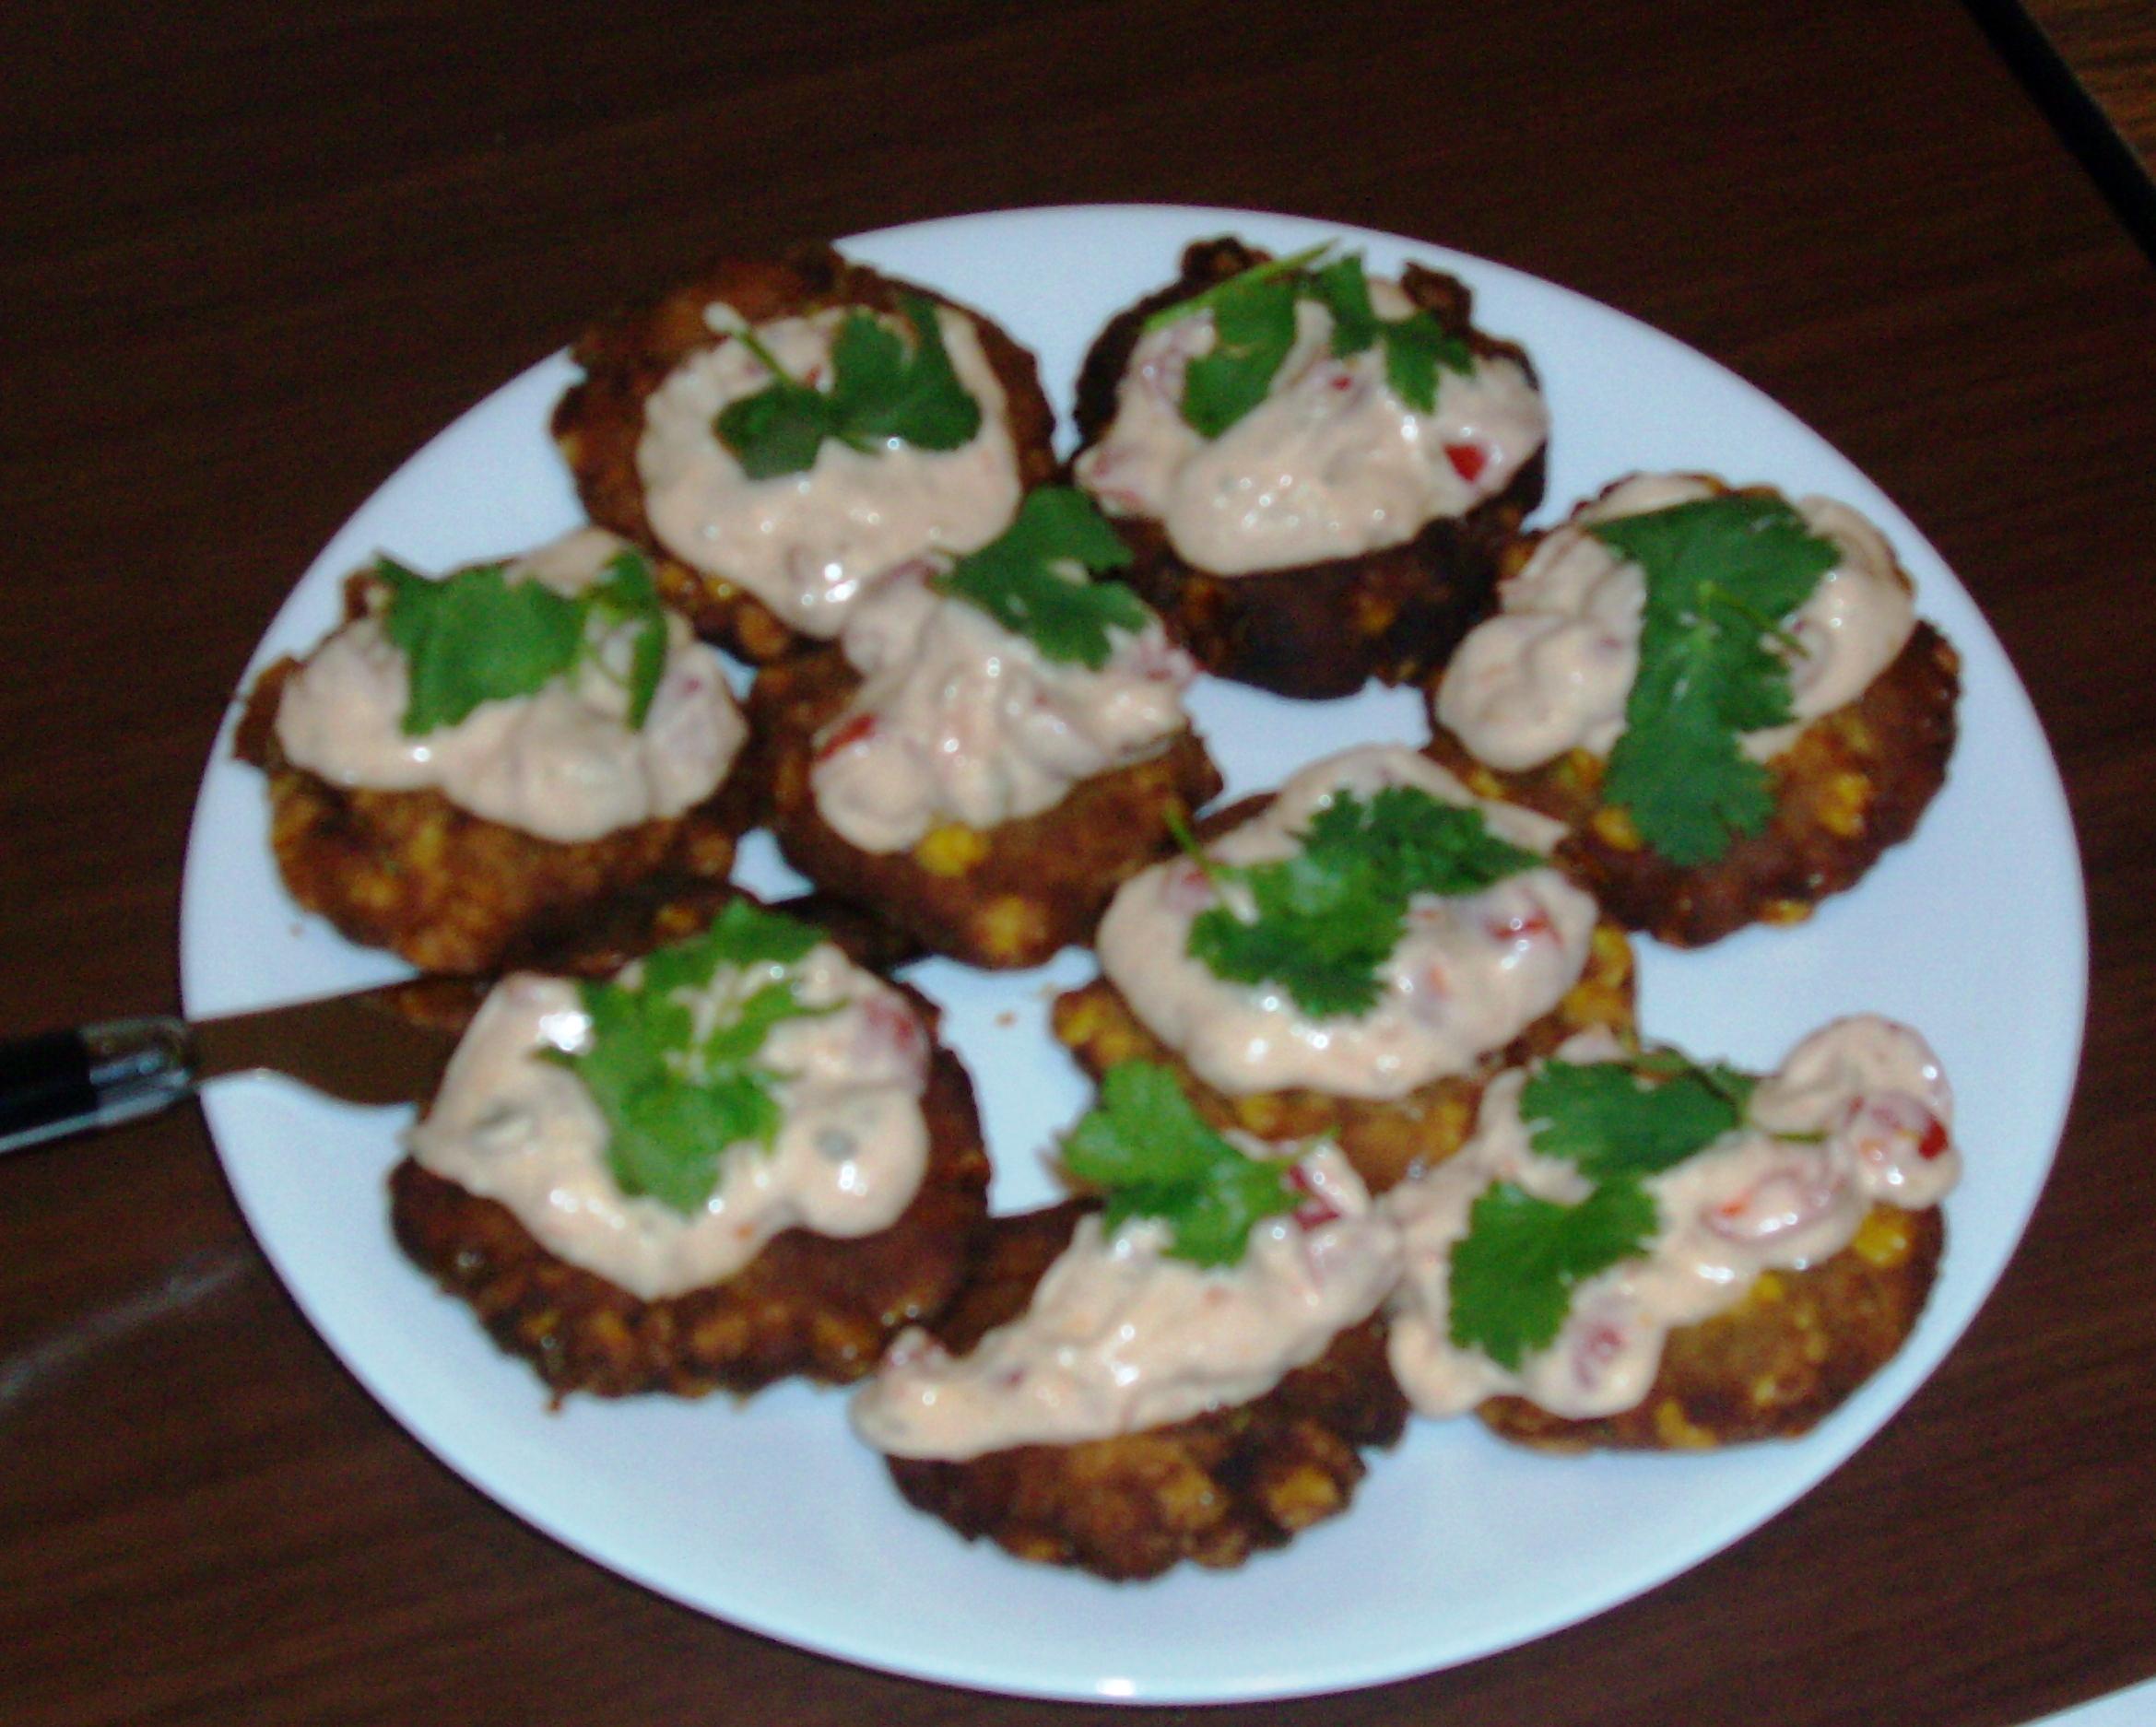 Firecracker Corn Avocado Fritter with Spicy Tomato Mayo - Honorable mention. Courtesy of Susan Asanovic